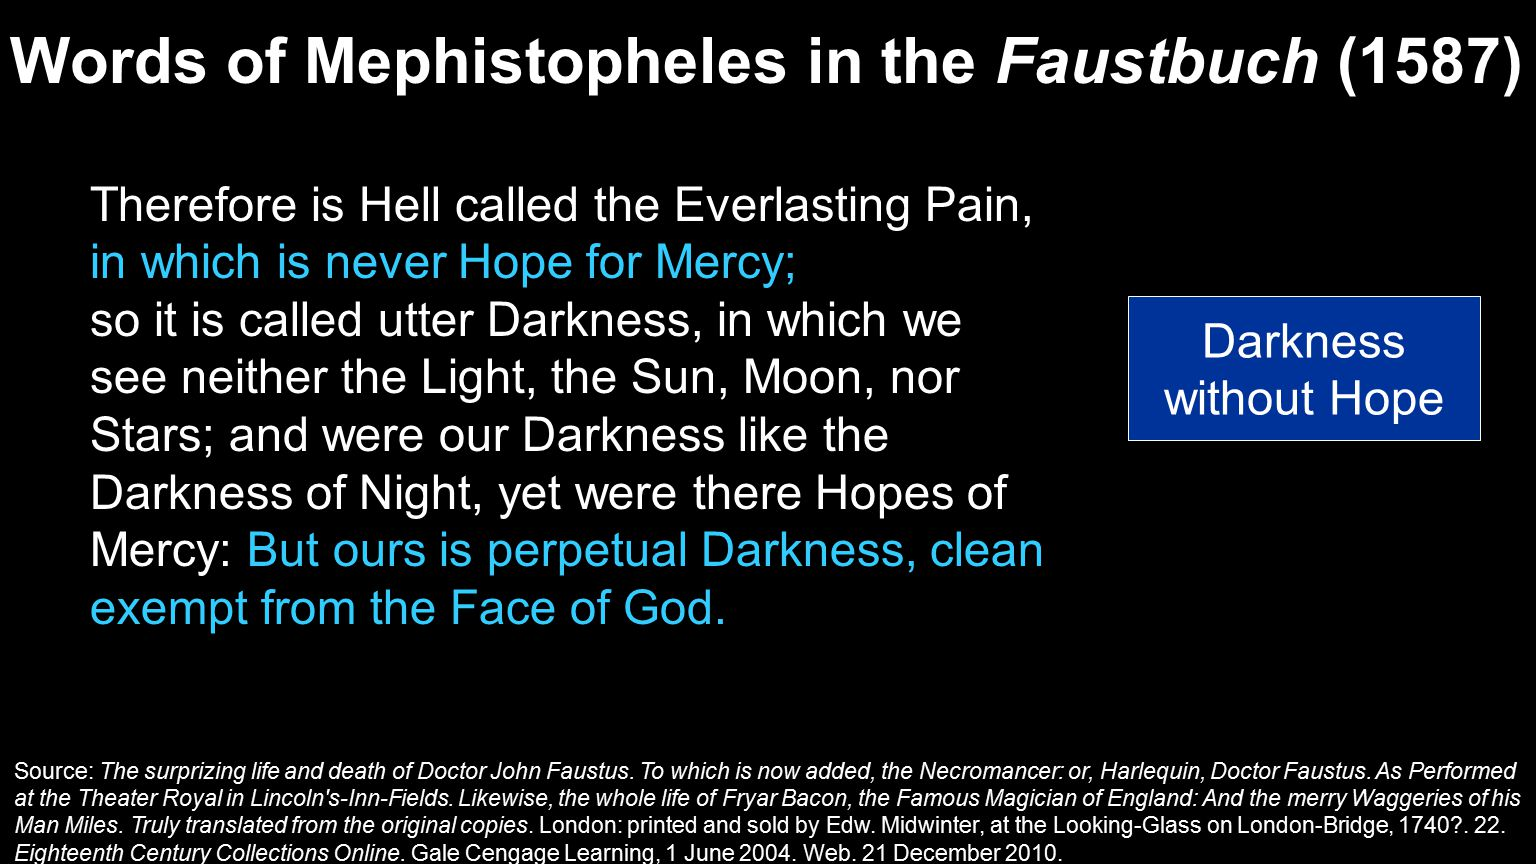 Therefore is Hell called the Everlasting Pain, in which is never Hope for Mercy; so it is called utter Darkness, in which we see neither the Light, th